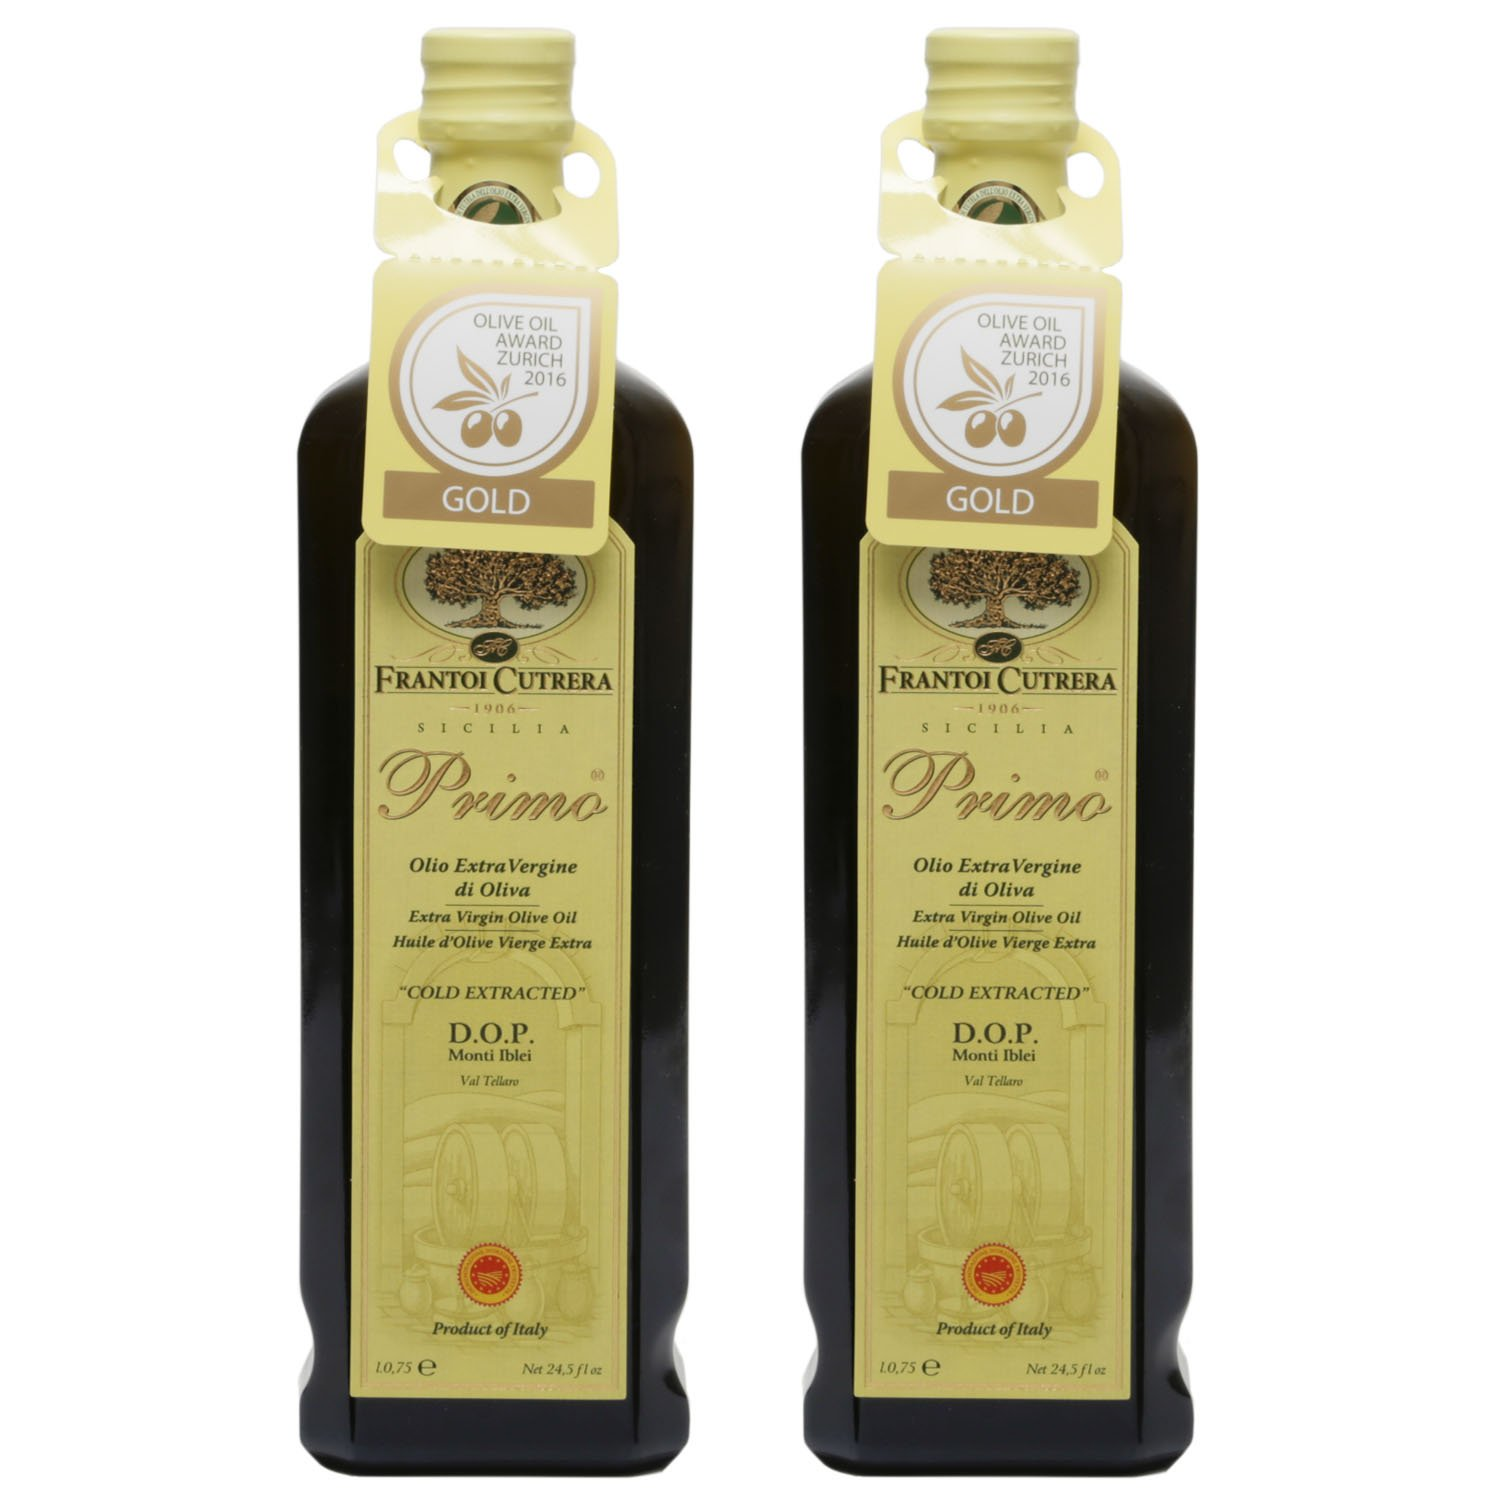 Frantoi Cutrera - Primo - Cold Extracted Extra Virgin Olive Oil, Imported from Italy, 24.5 fl oz - Pack of 2 by Frantoi Cutrera